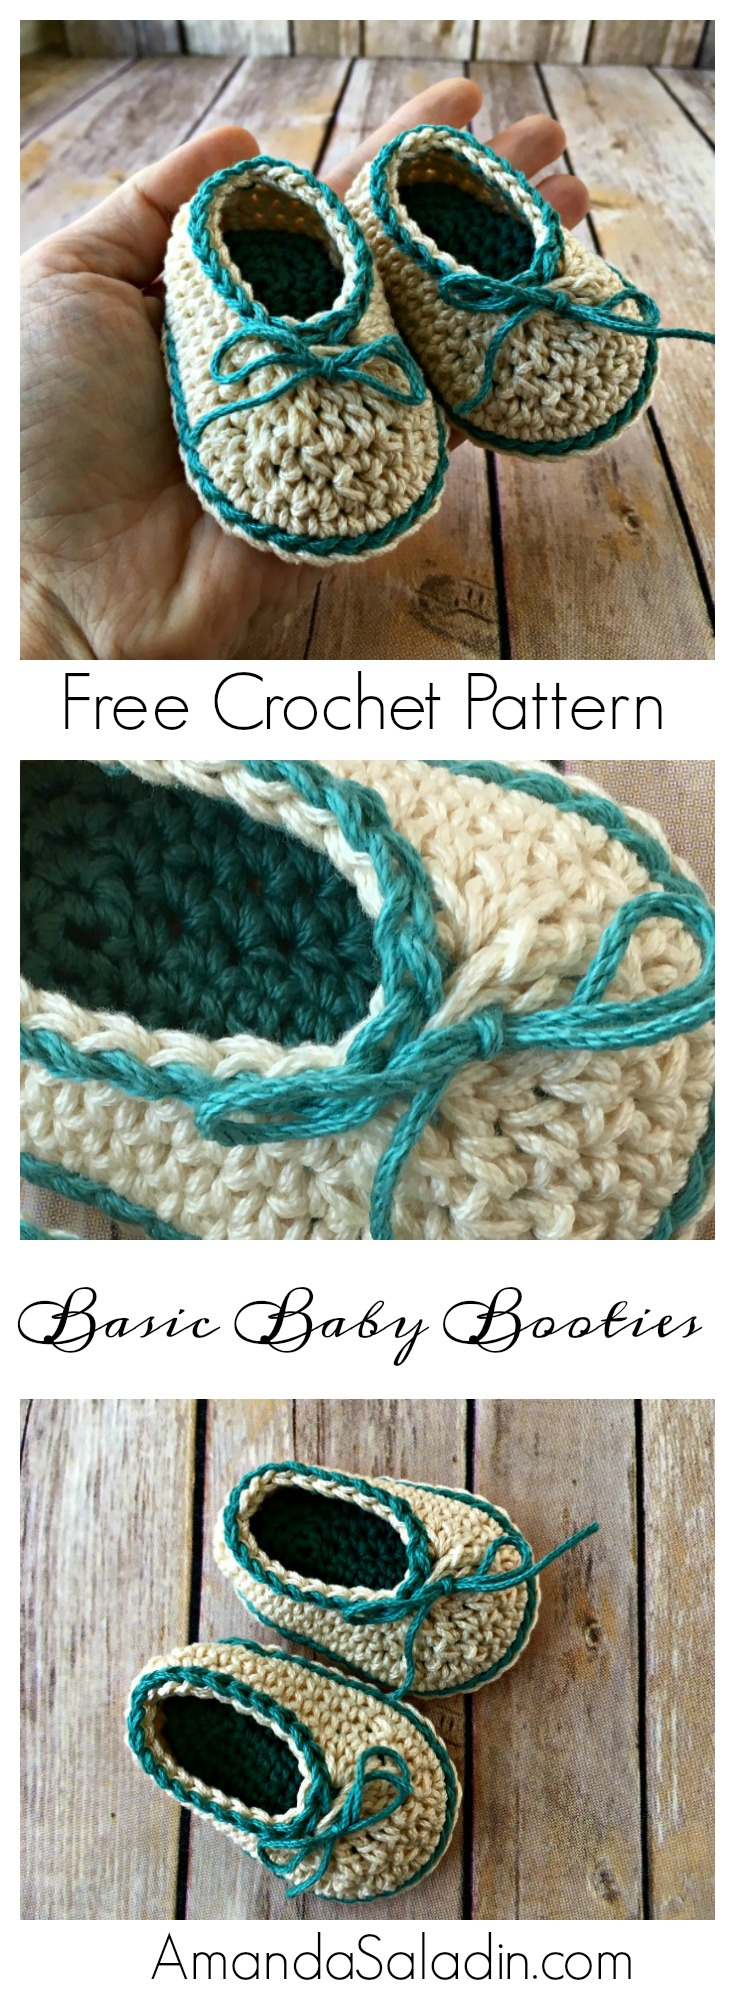 Free Crochet Pattern - Basic Baby Booties. These are SO easy!